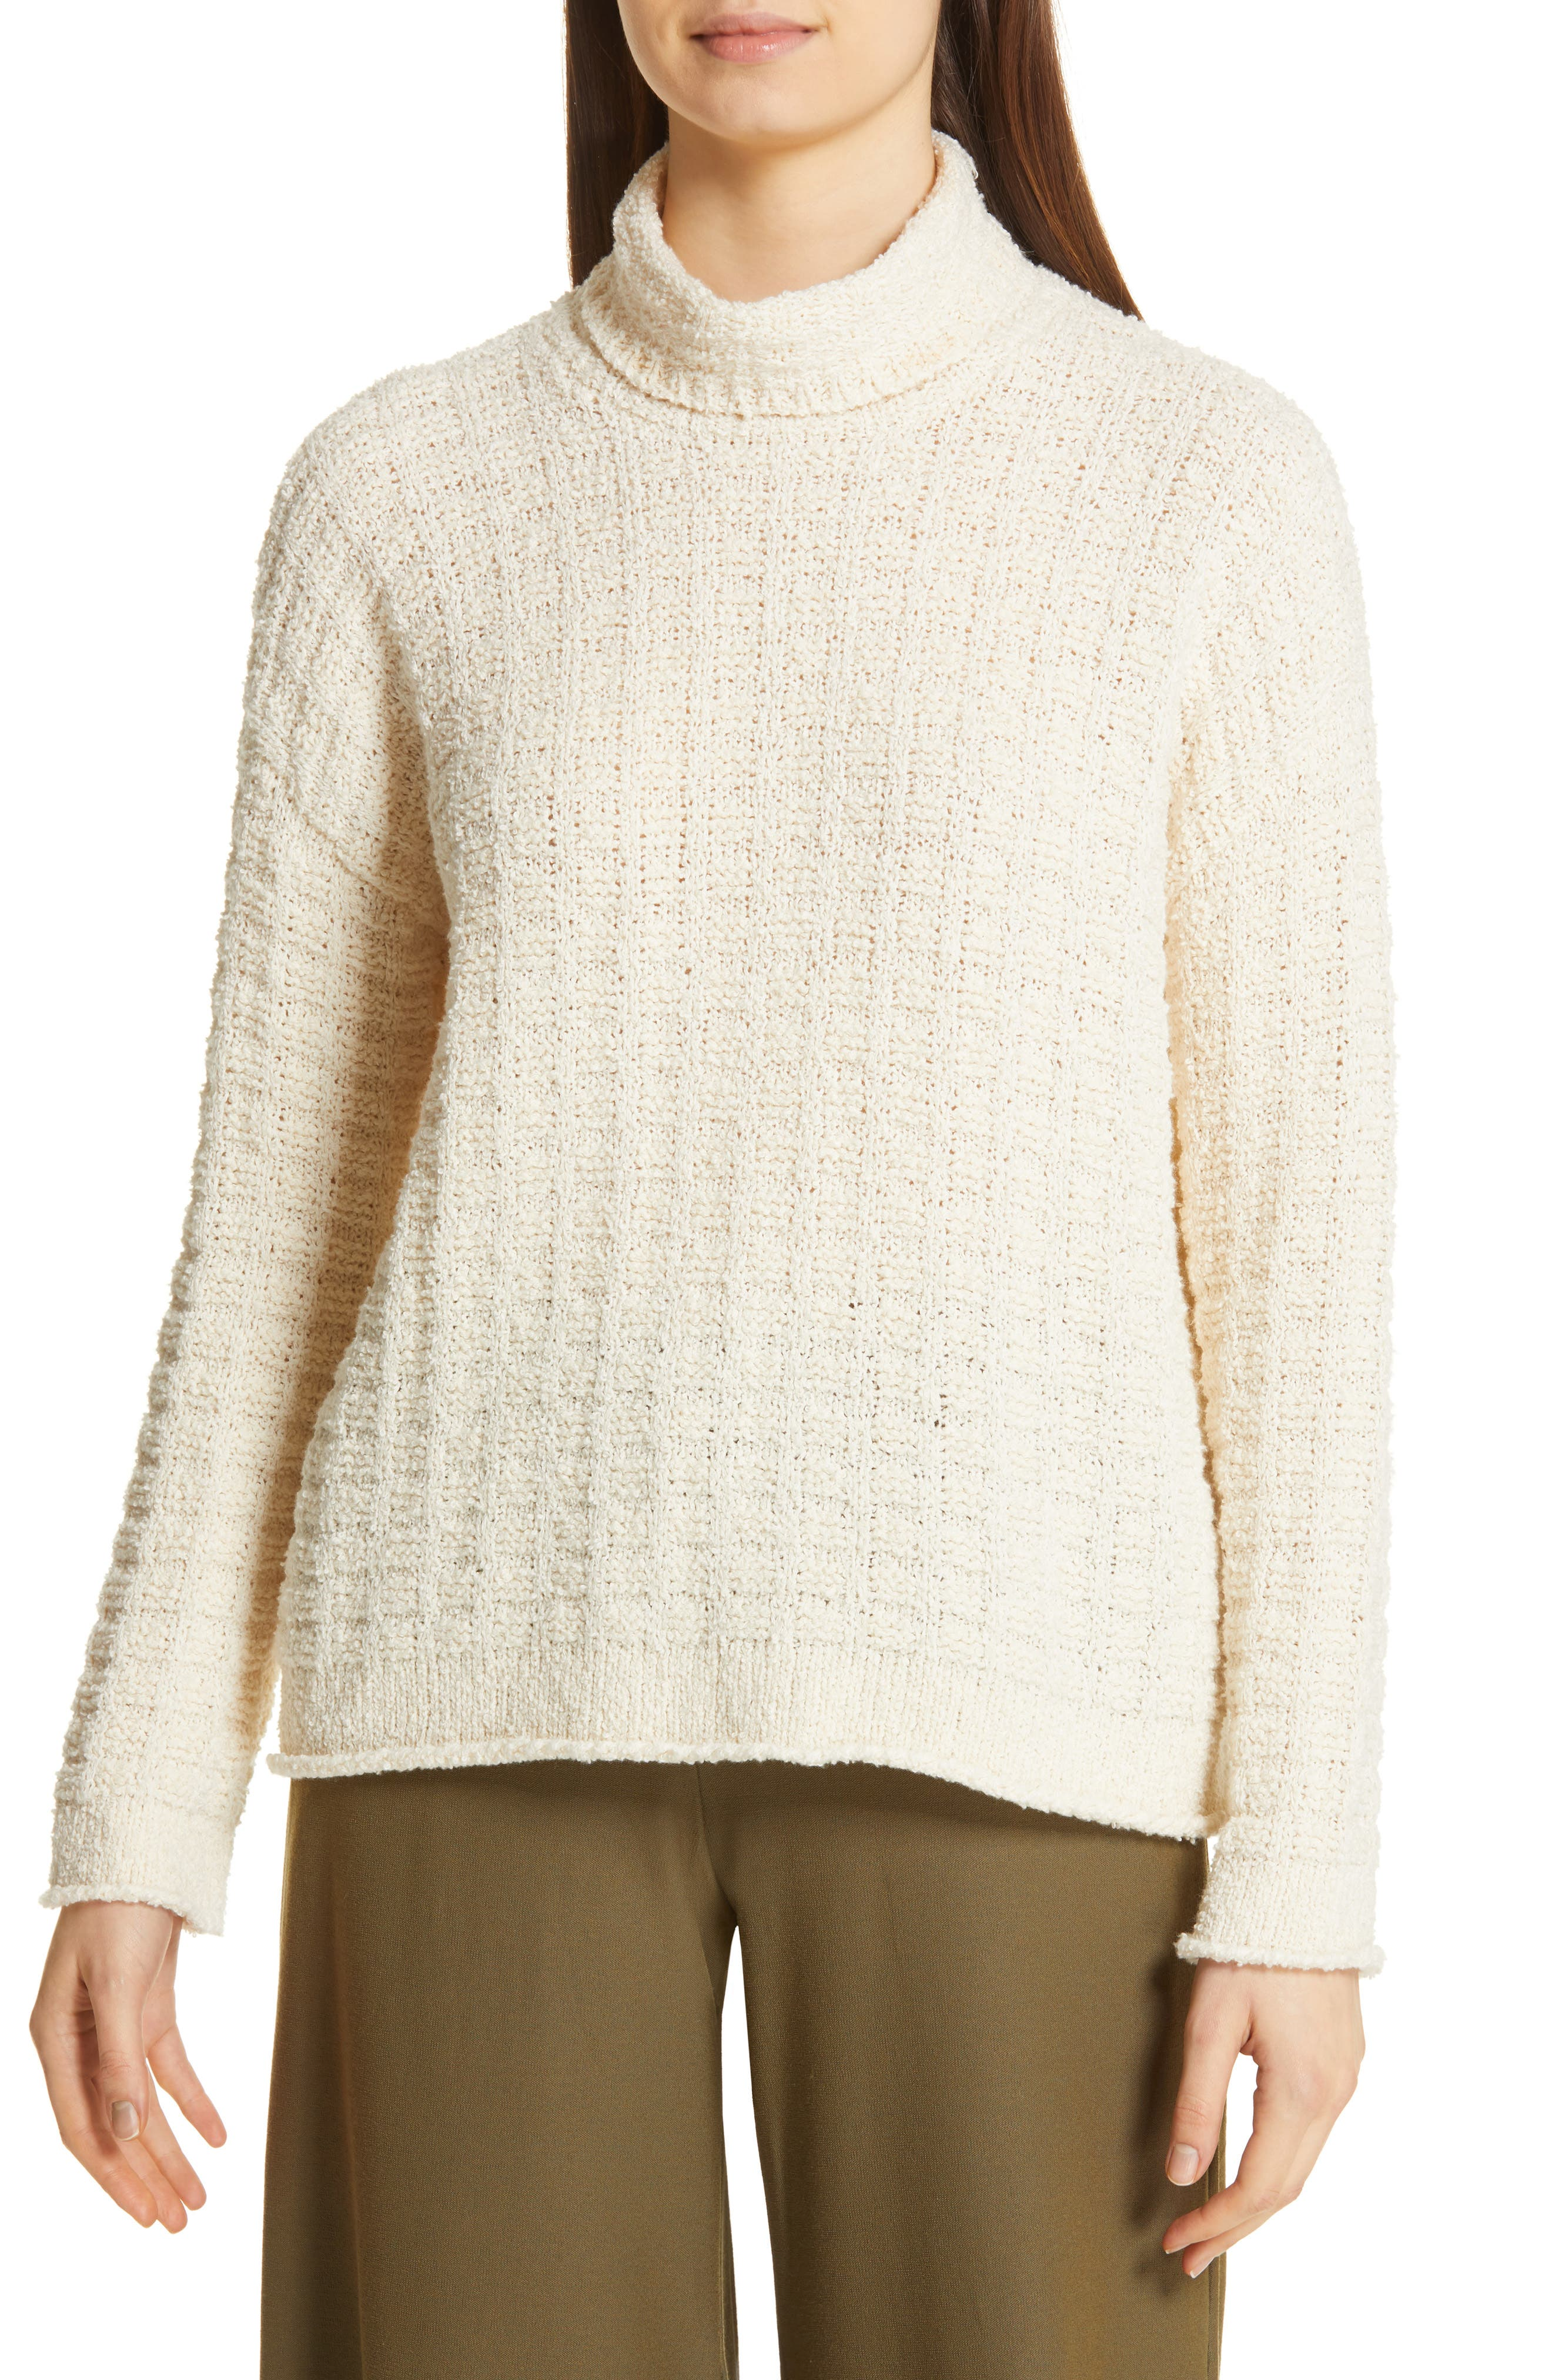 EILEEN FISHER, Funnel Neck Sweater, Main thumbnail 1, color, 100